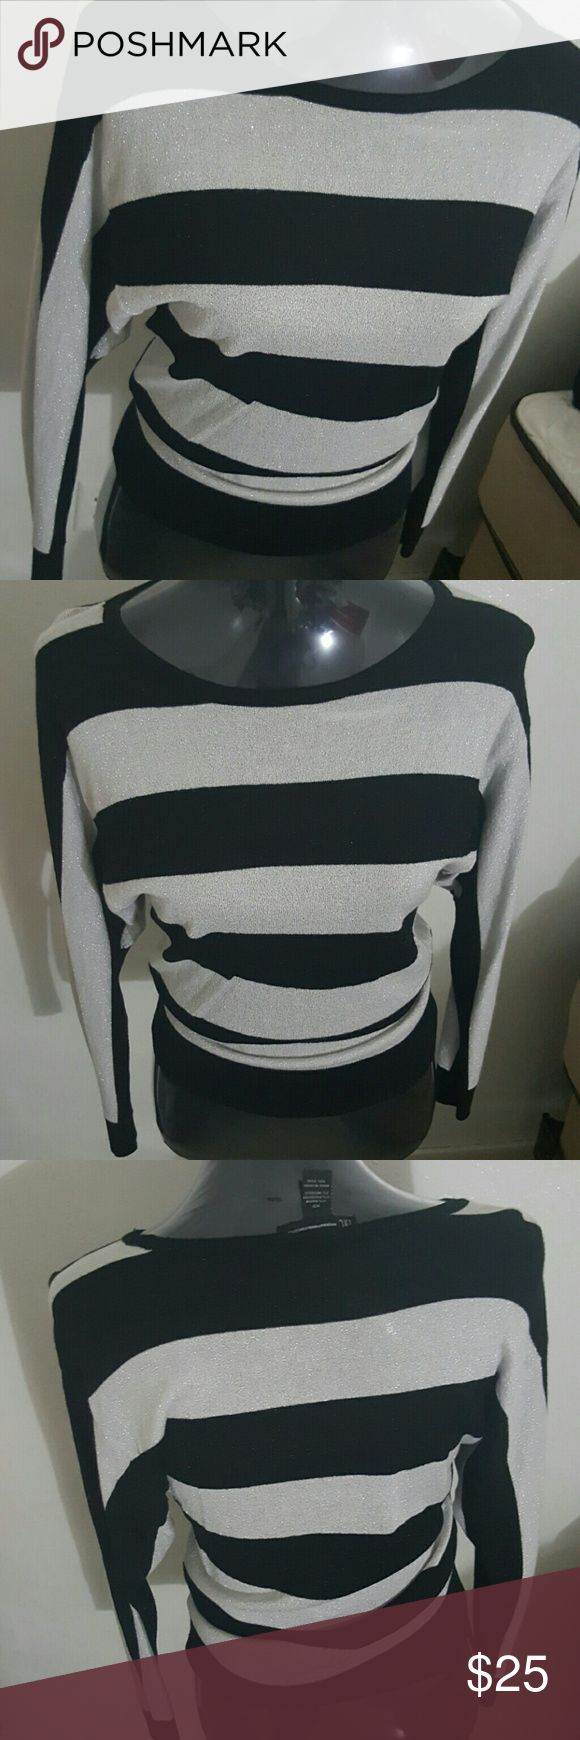 INC striped dolman top INC international concepts striped dolman. It's sparkly all over with black and silver. This is a regular xs and kinda sits off the shoulder for me. No stains or damages. Stock photo to show what it looks like on. Price negotiable in offers Macy's Tops Tees - Long Sleeve